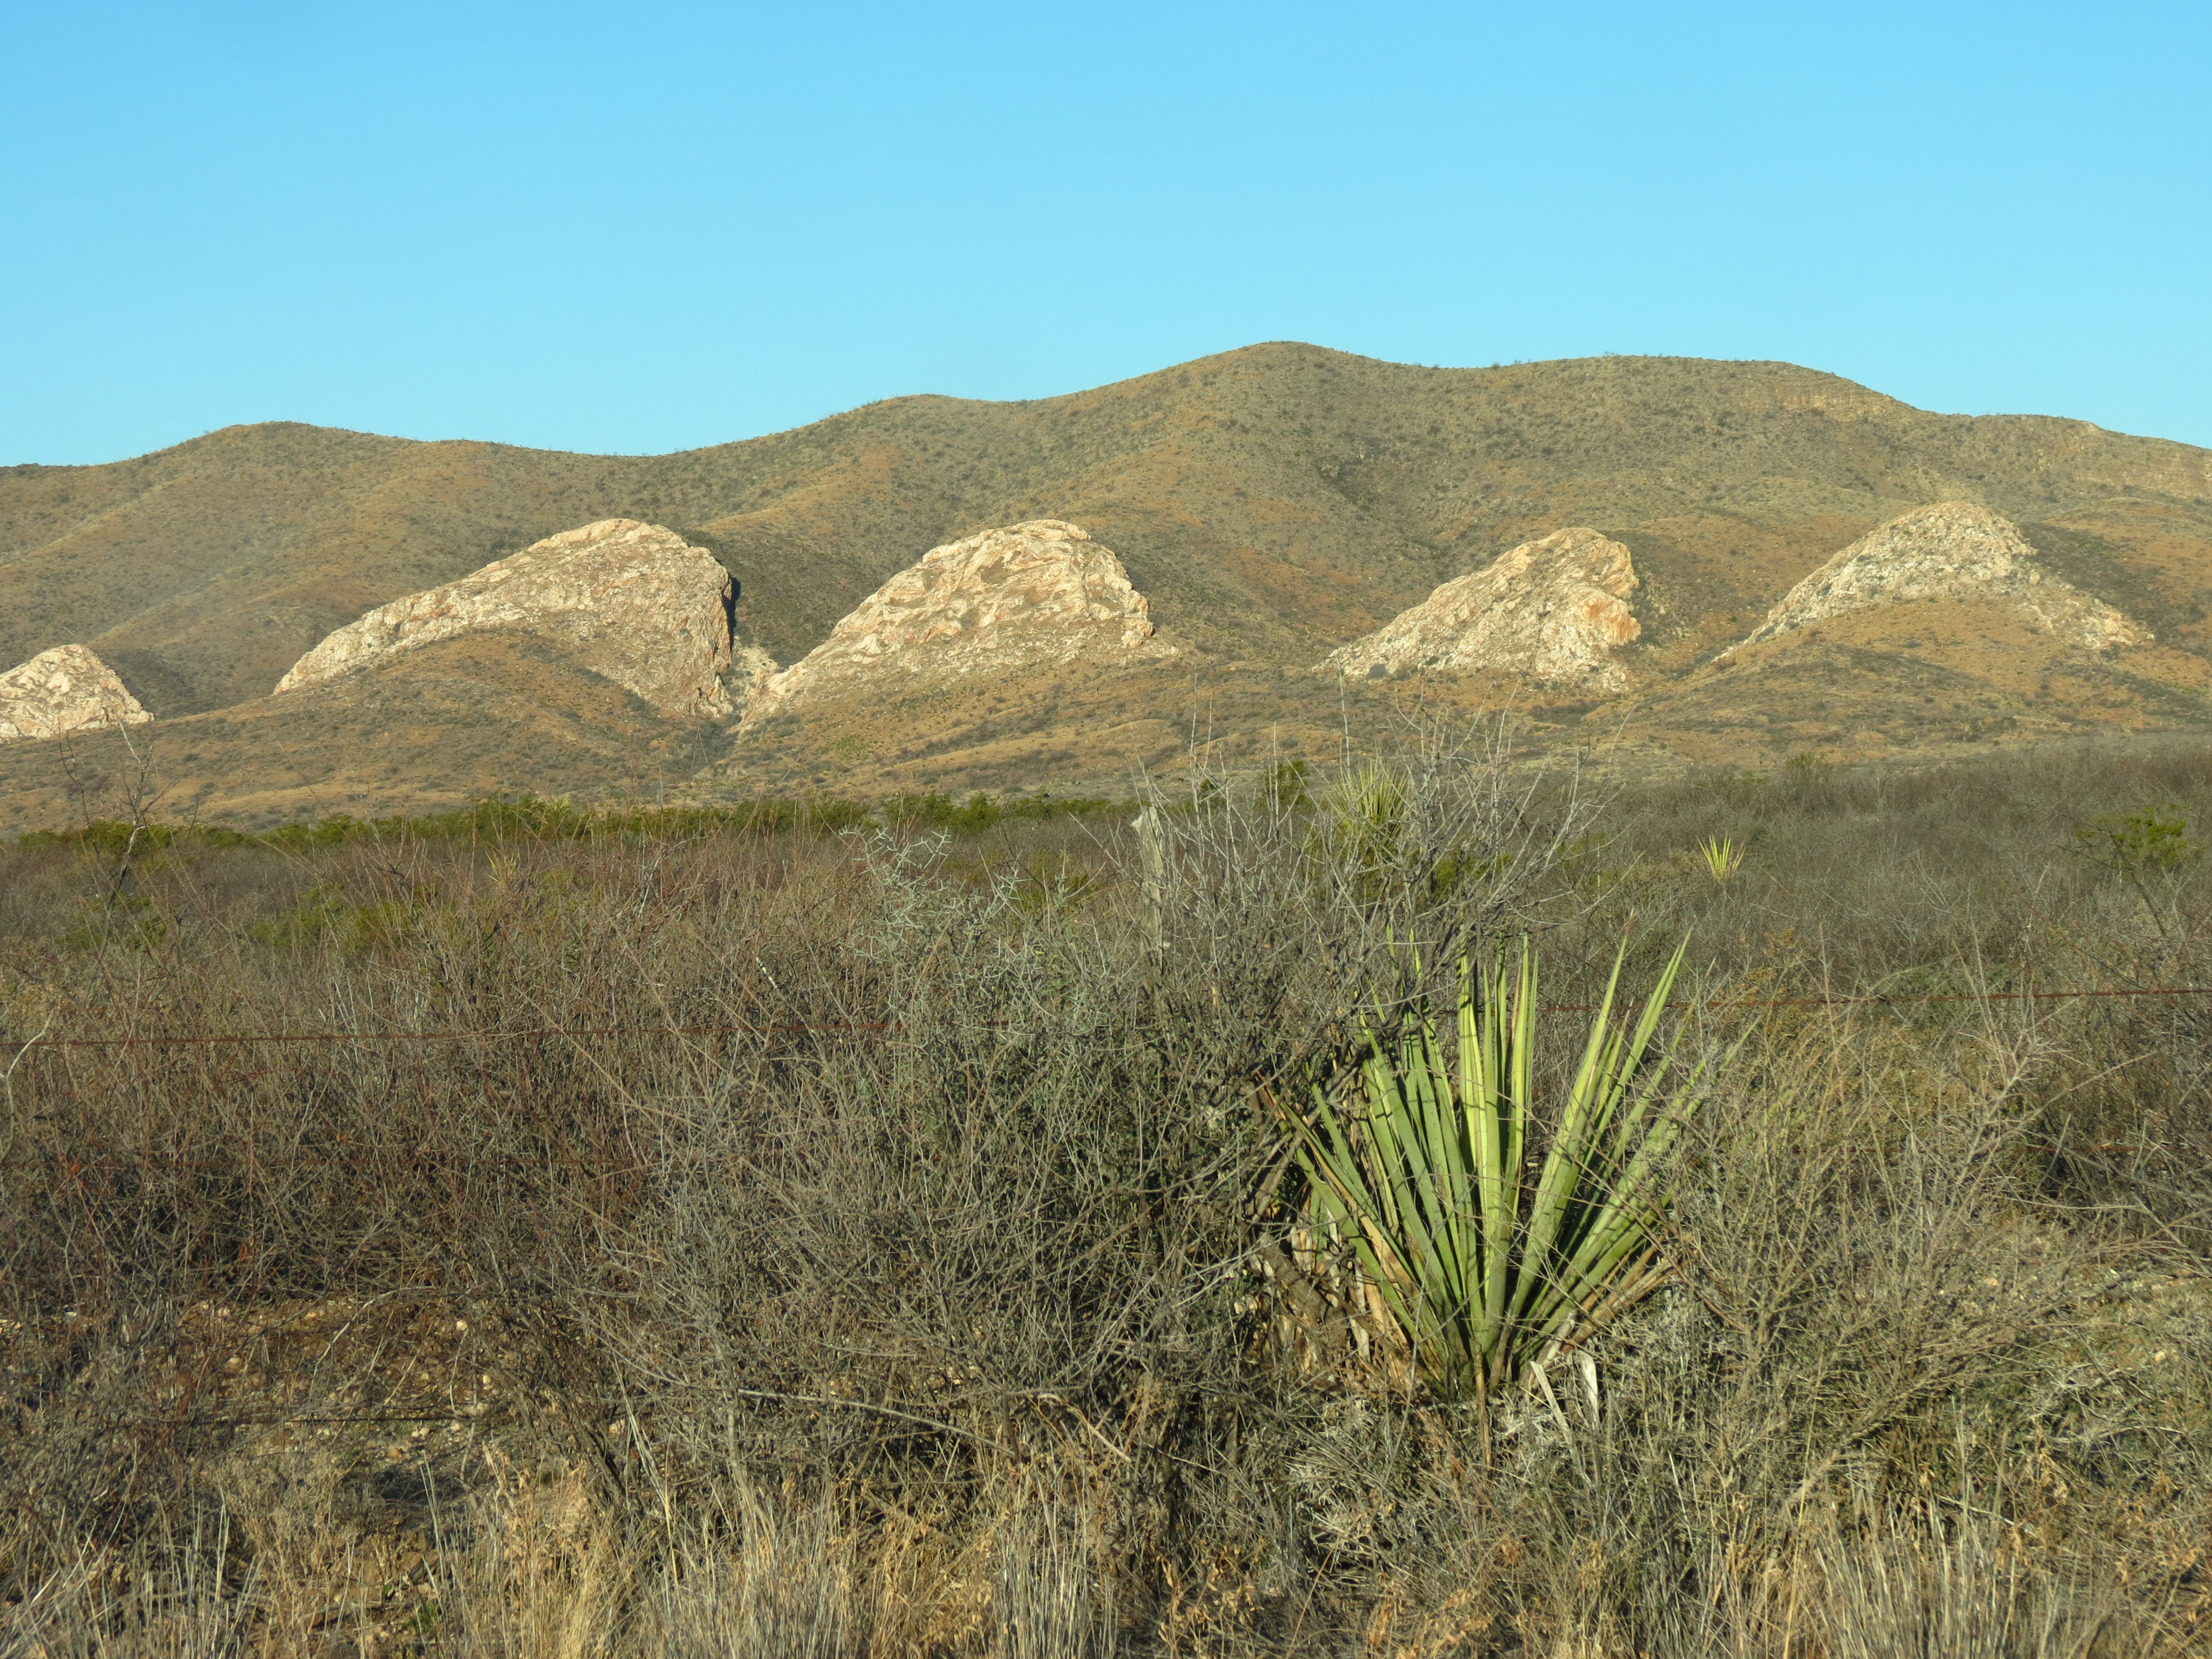 HAPPY VALENTINES DAY at Big Bend National Park | Tiger Tales